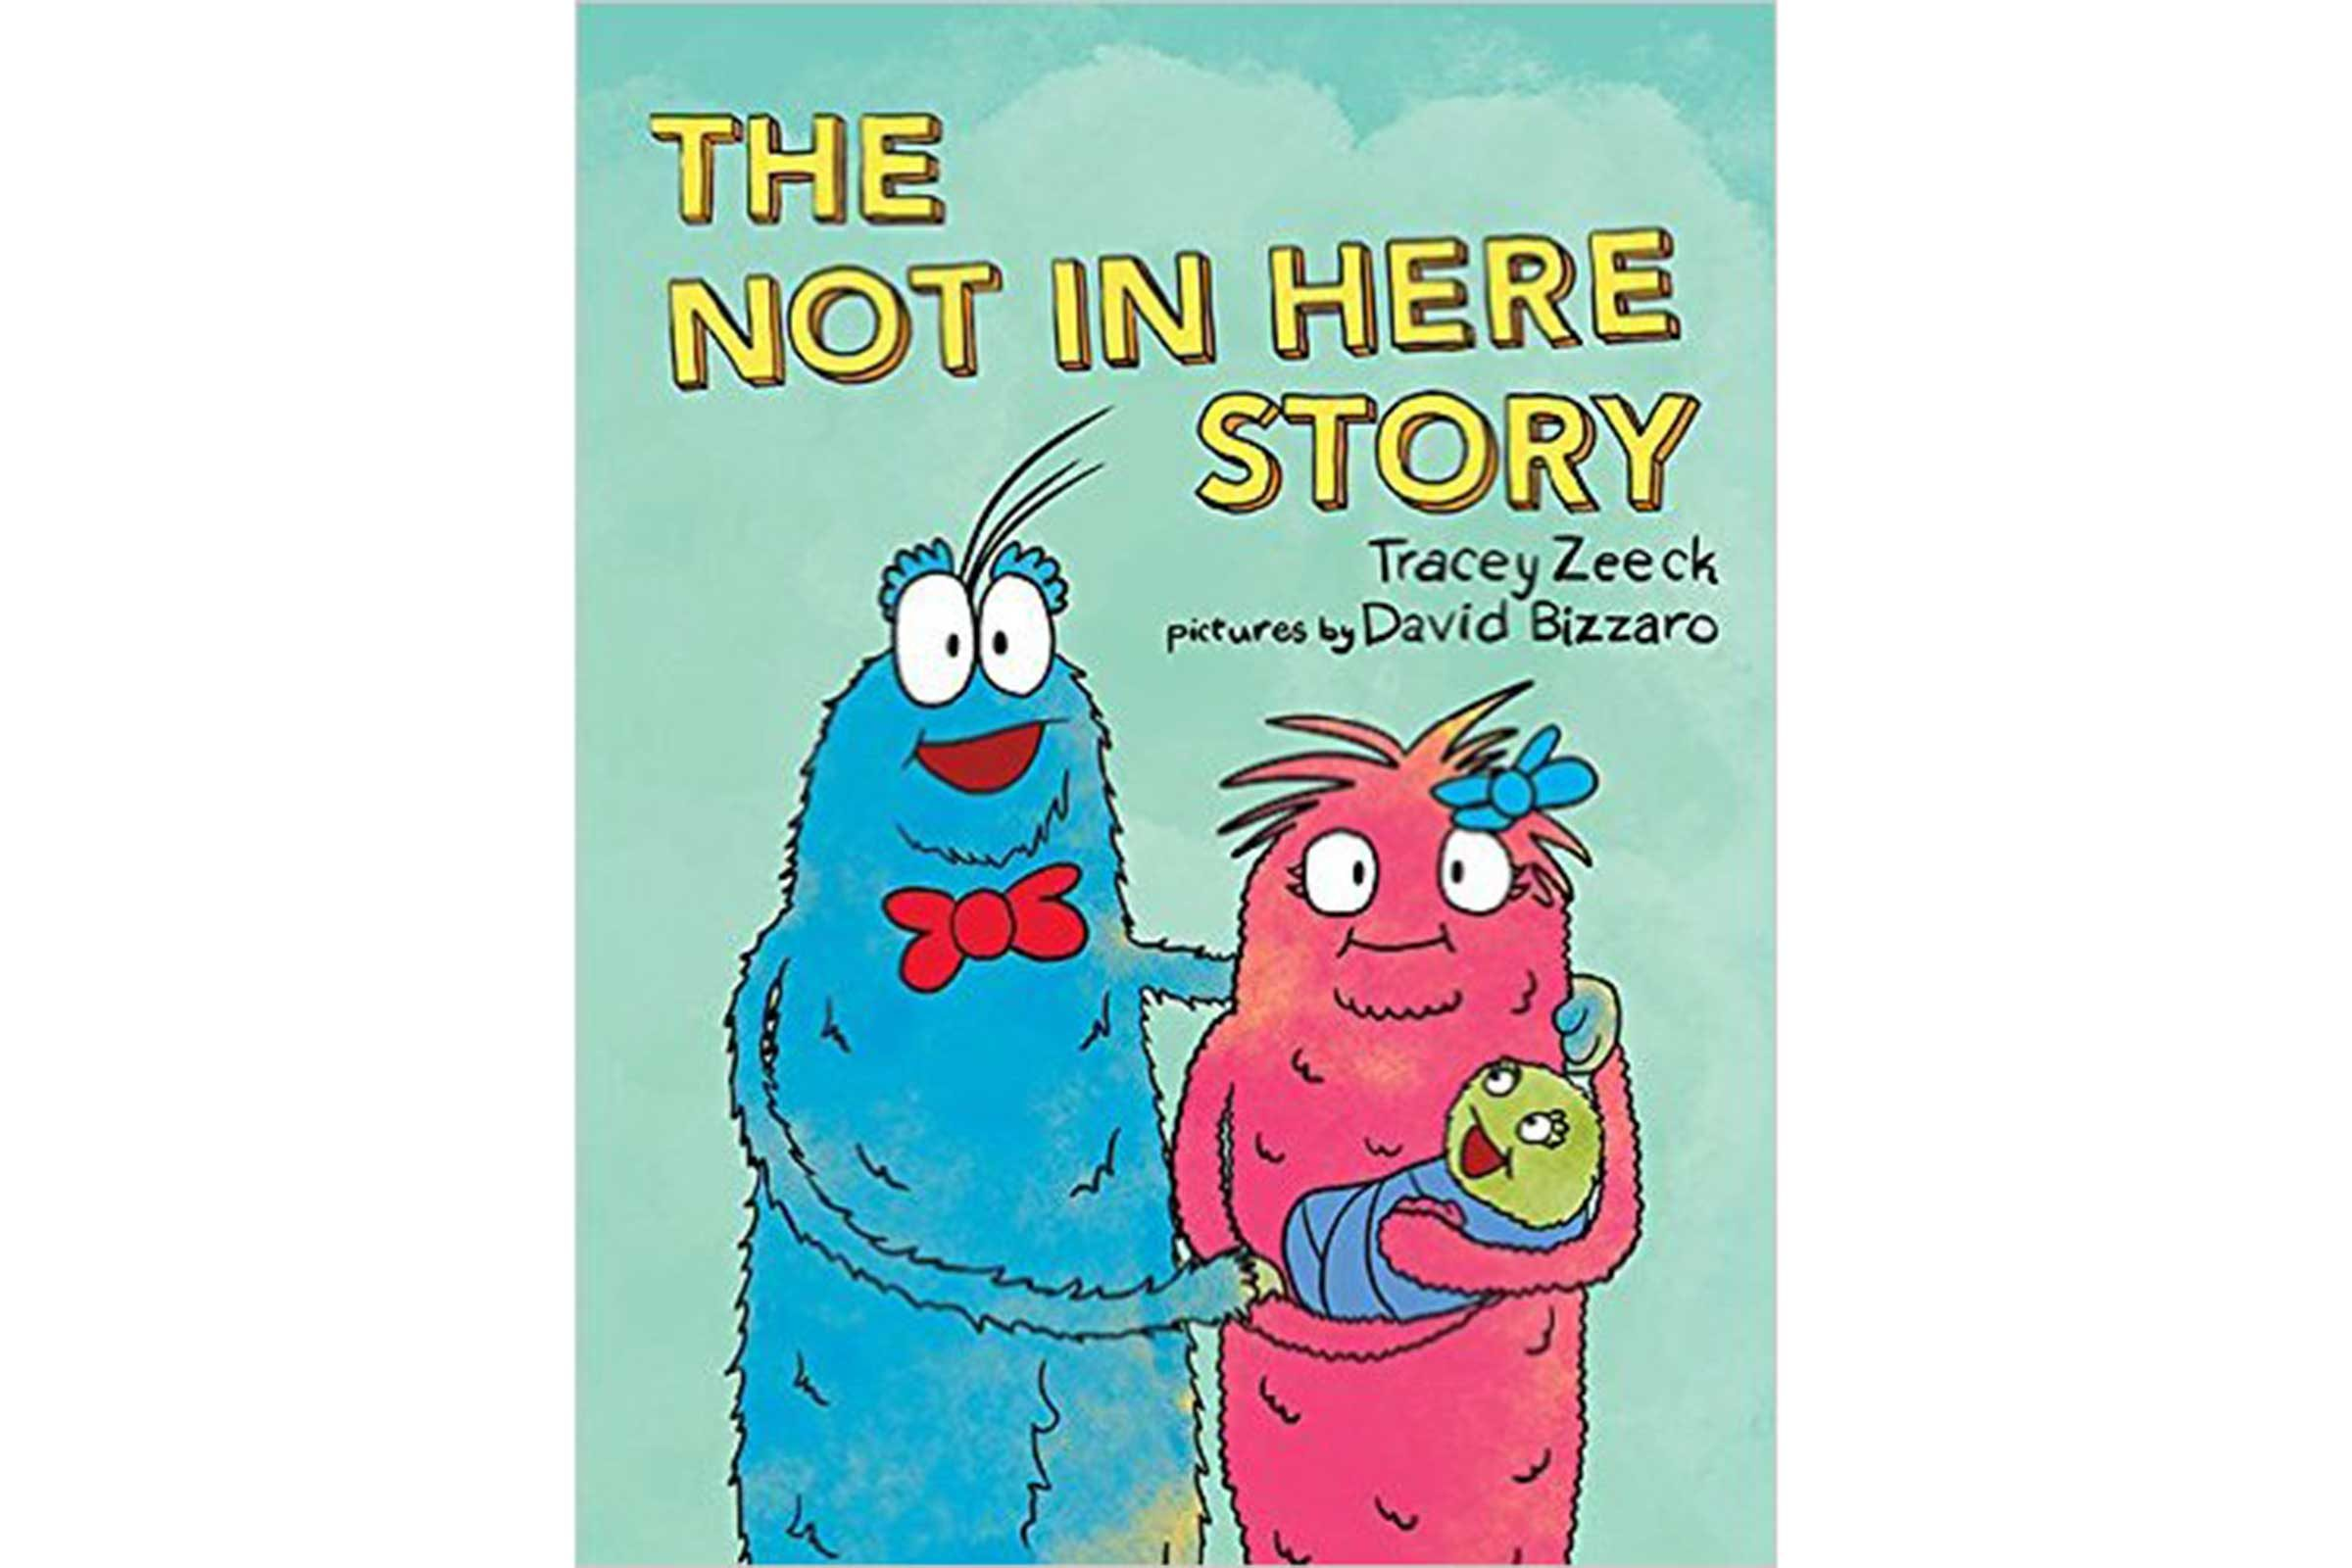 'The Not In Here Story' by Tracey Zeeck